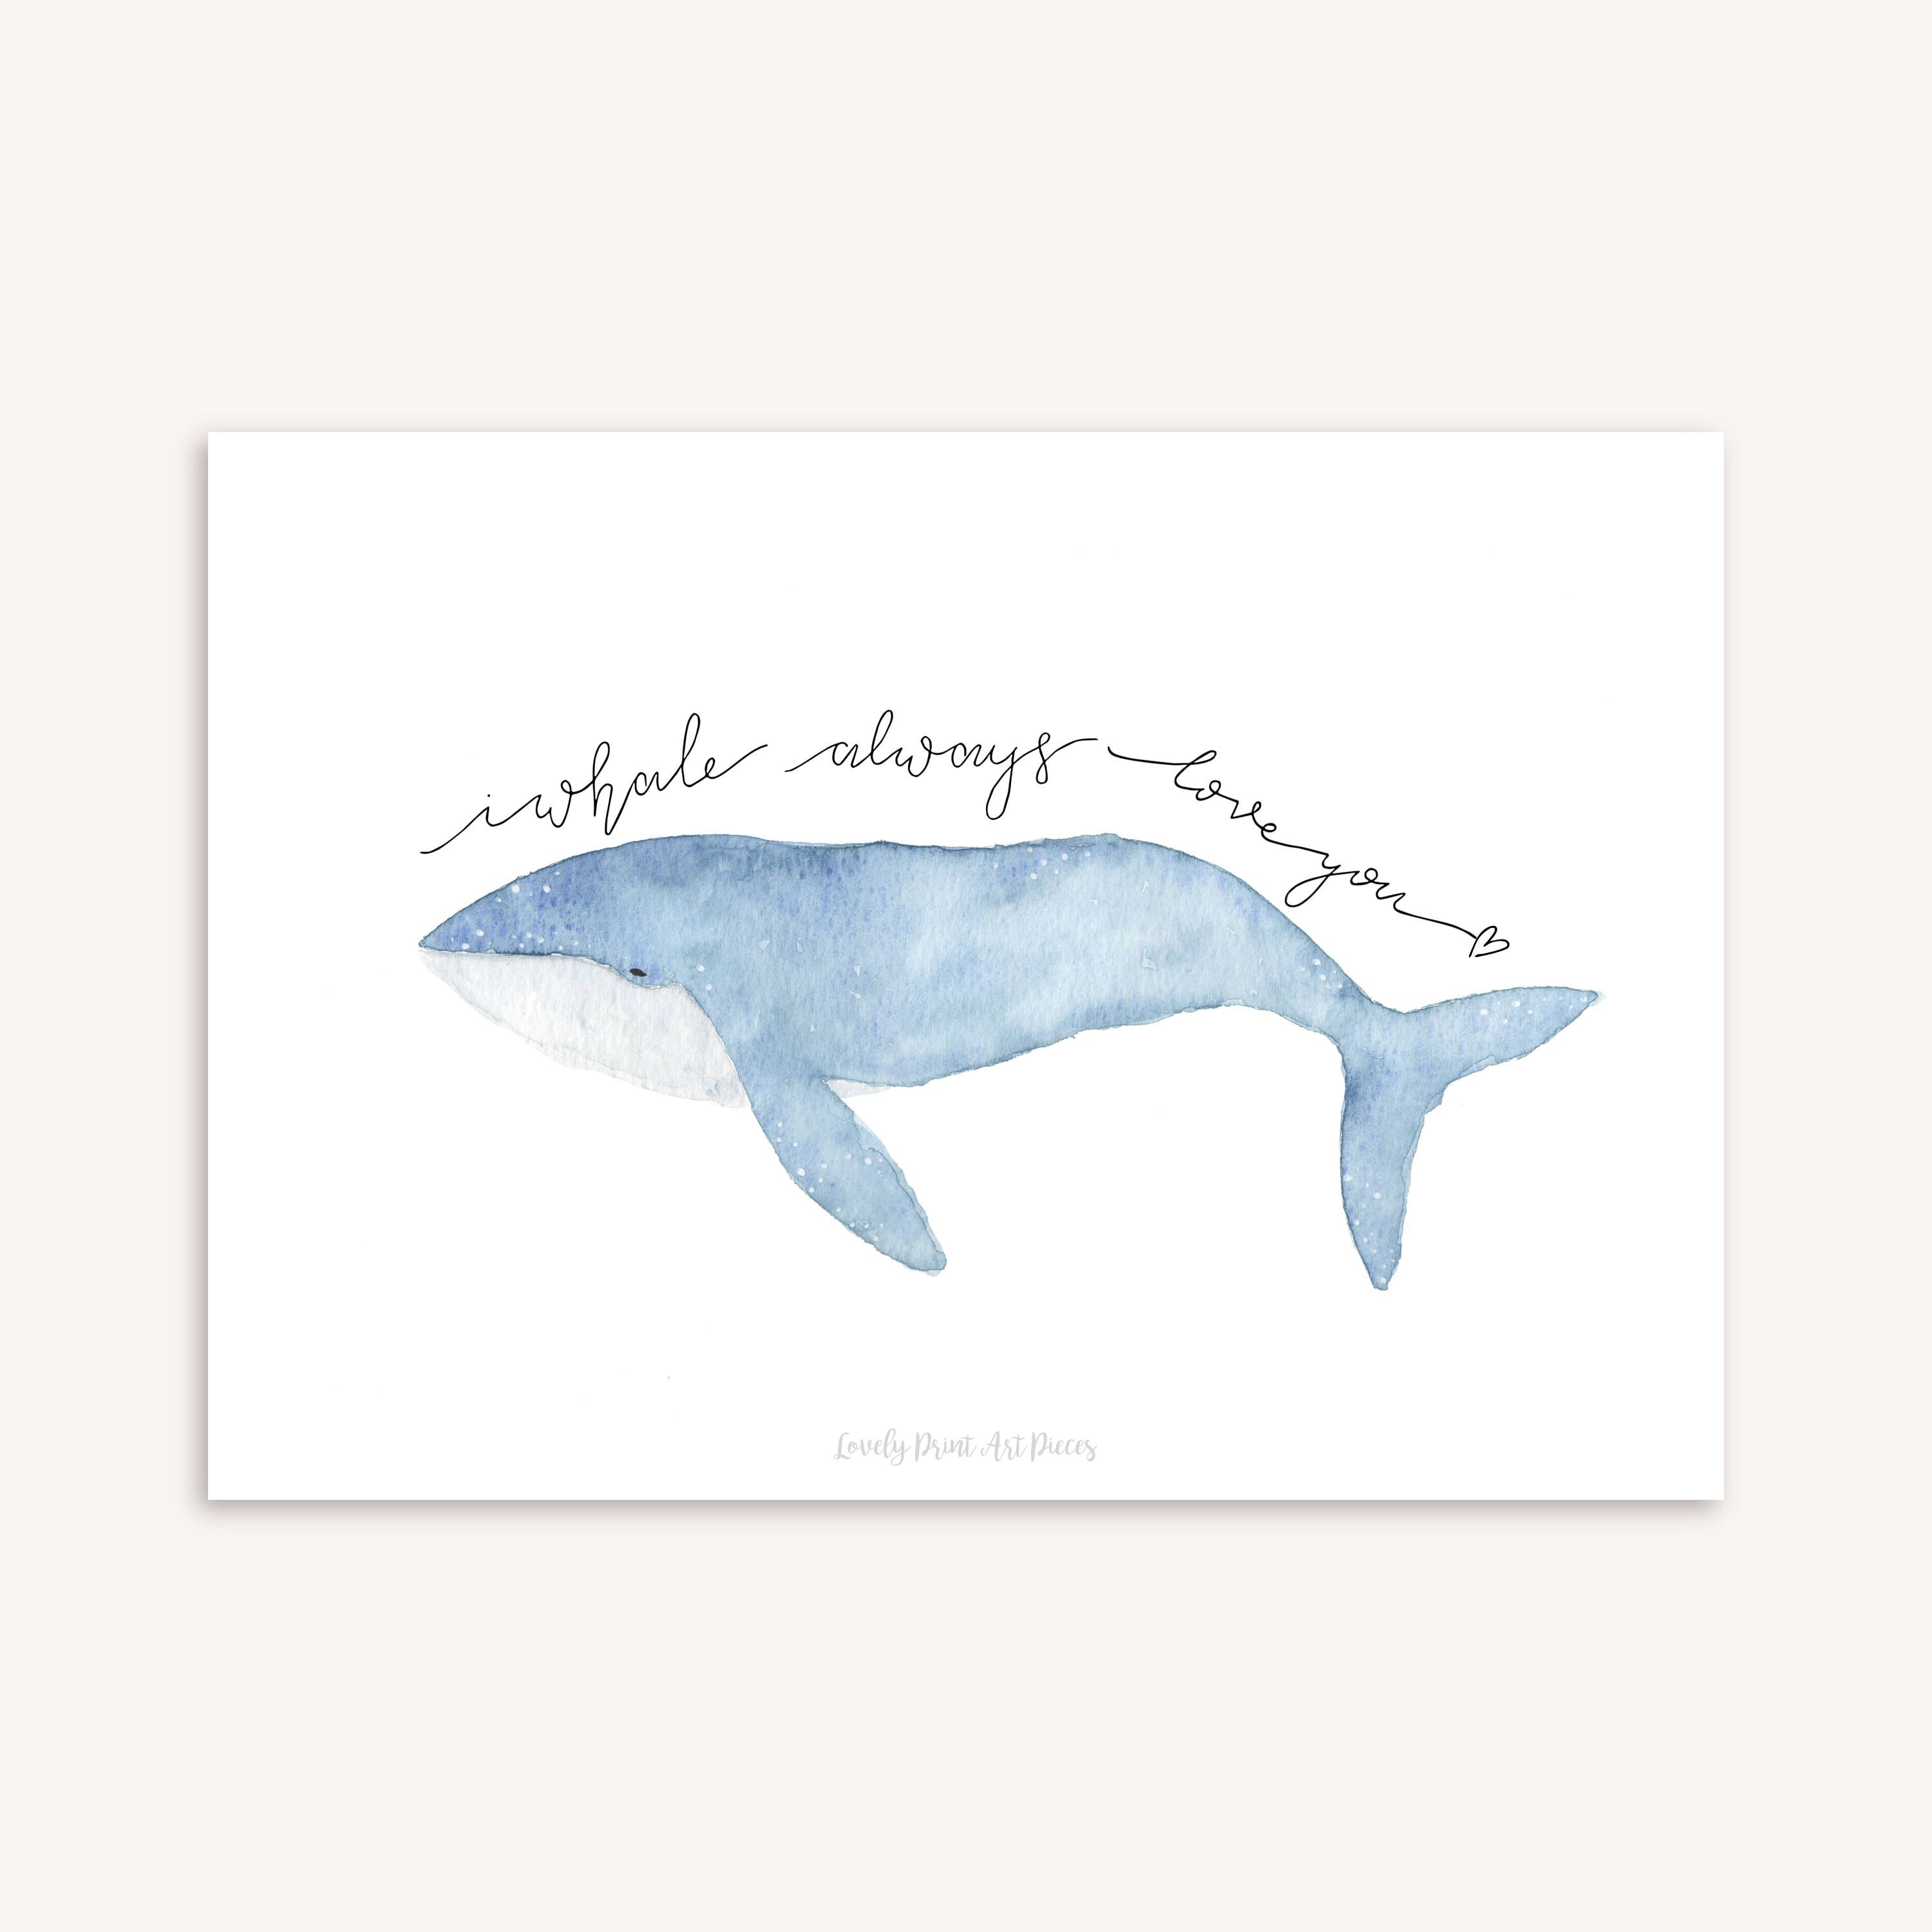 Printable Valentine's day gift card watercolor whale – I whale always love you – art print love illustration – poster download valentine A5